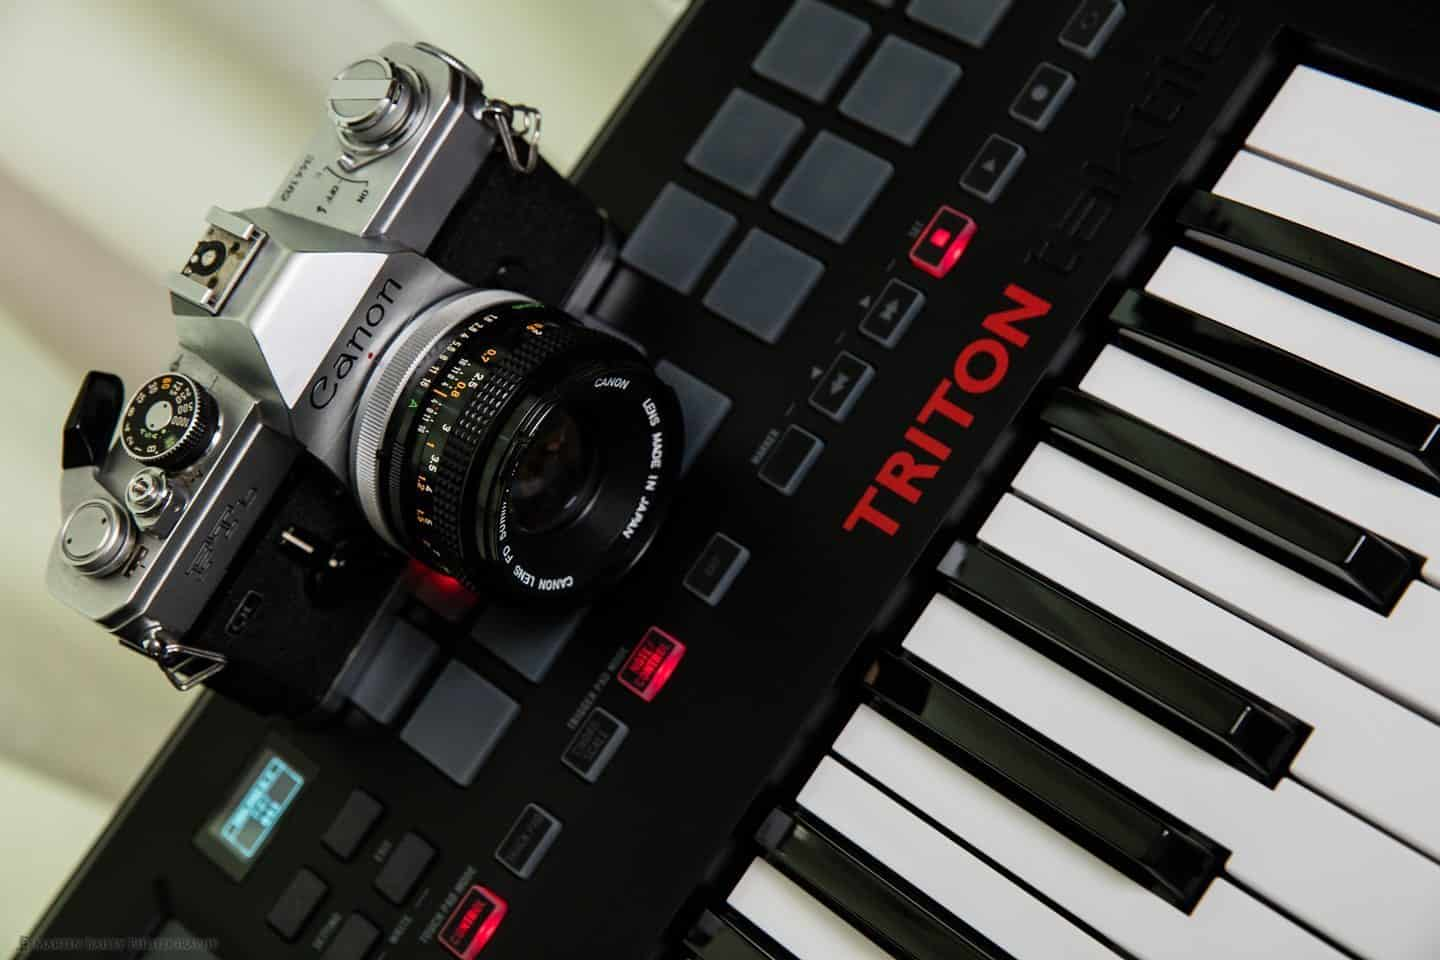 Camera and Keyboard